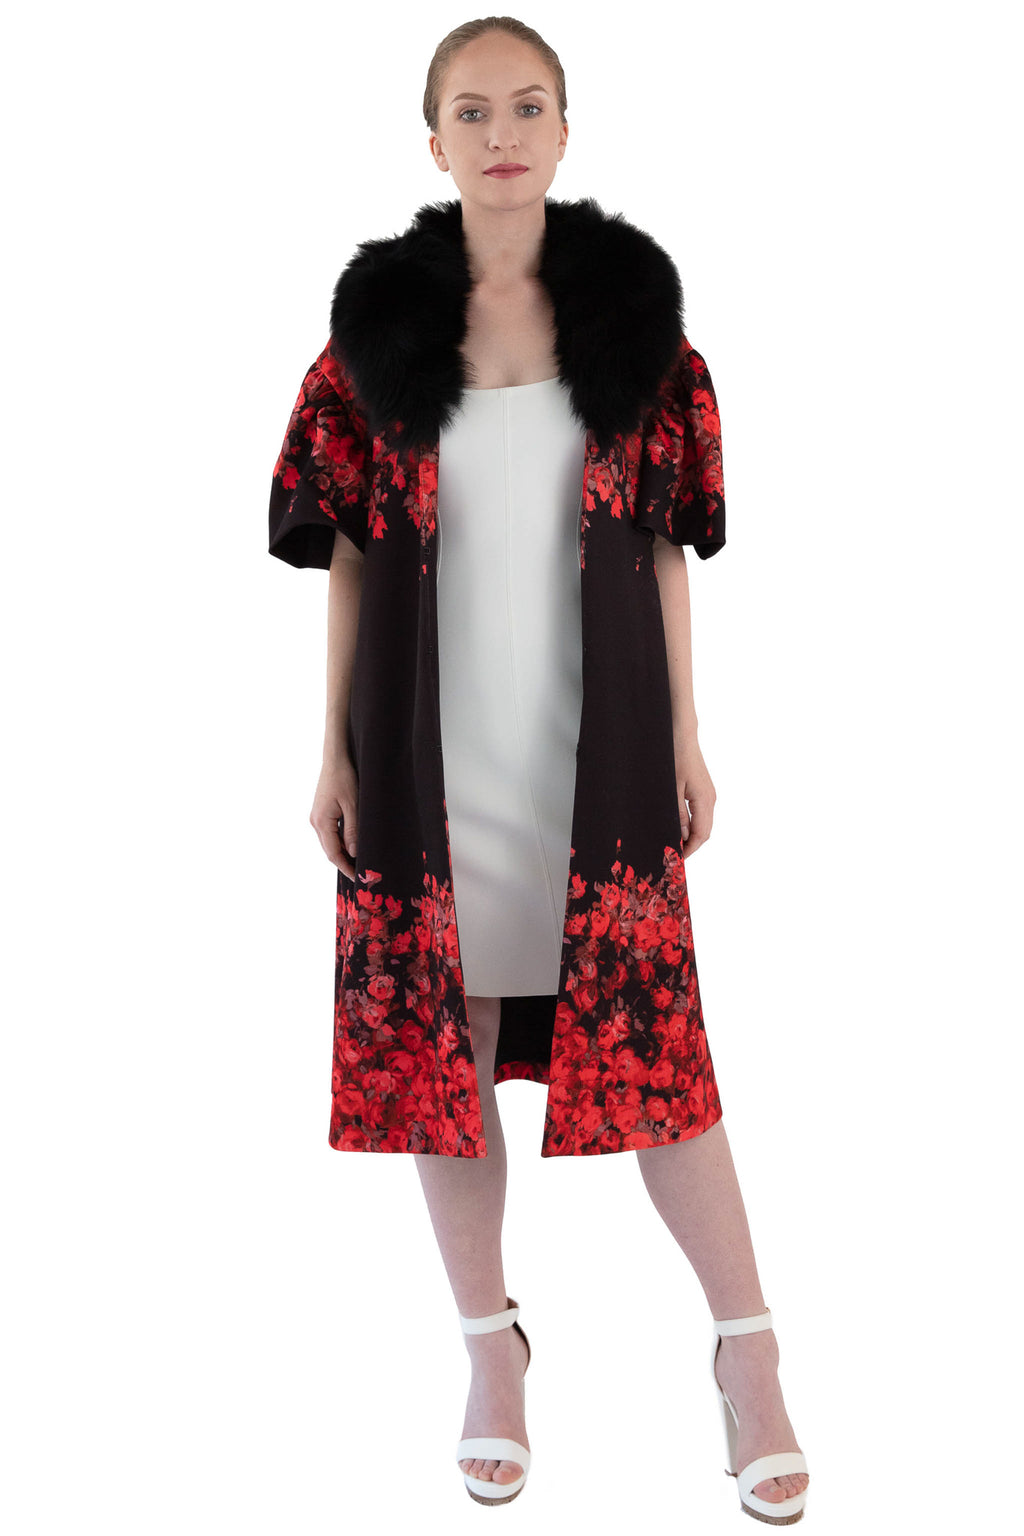 Front women's red floral coat with detachable black fox fur collar